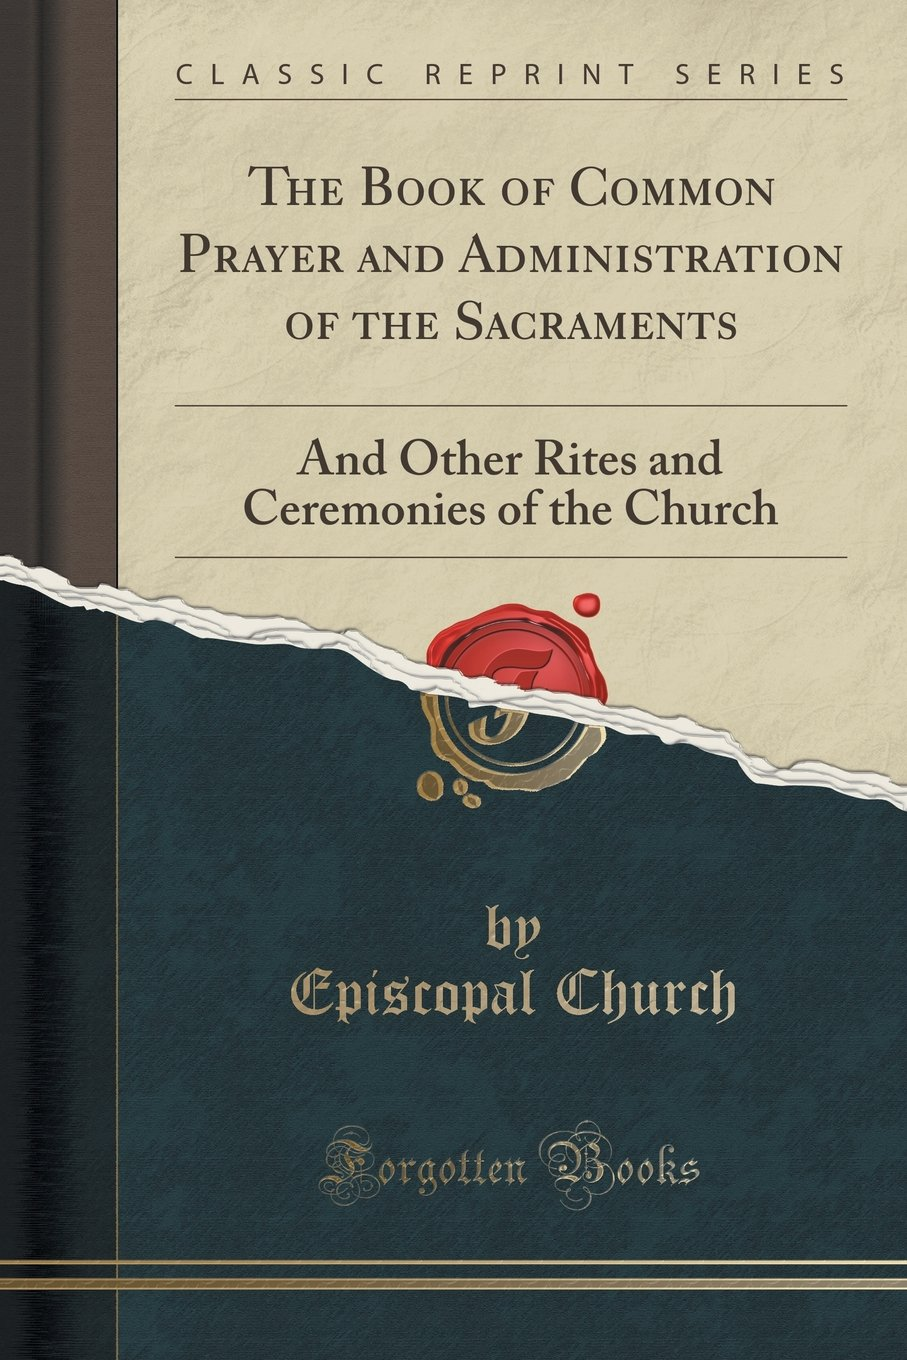 Download The Book of Common Prayer and Administration of the Sacraments: And Other Rites and Ceremonies of the Church (Classic Reprint) pdf